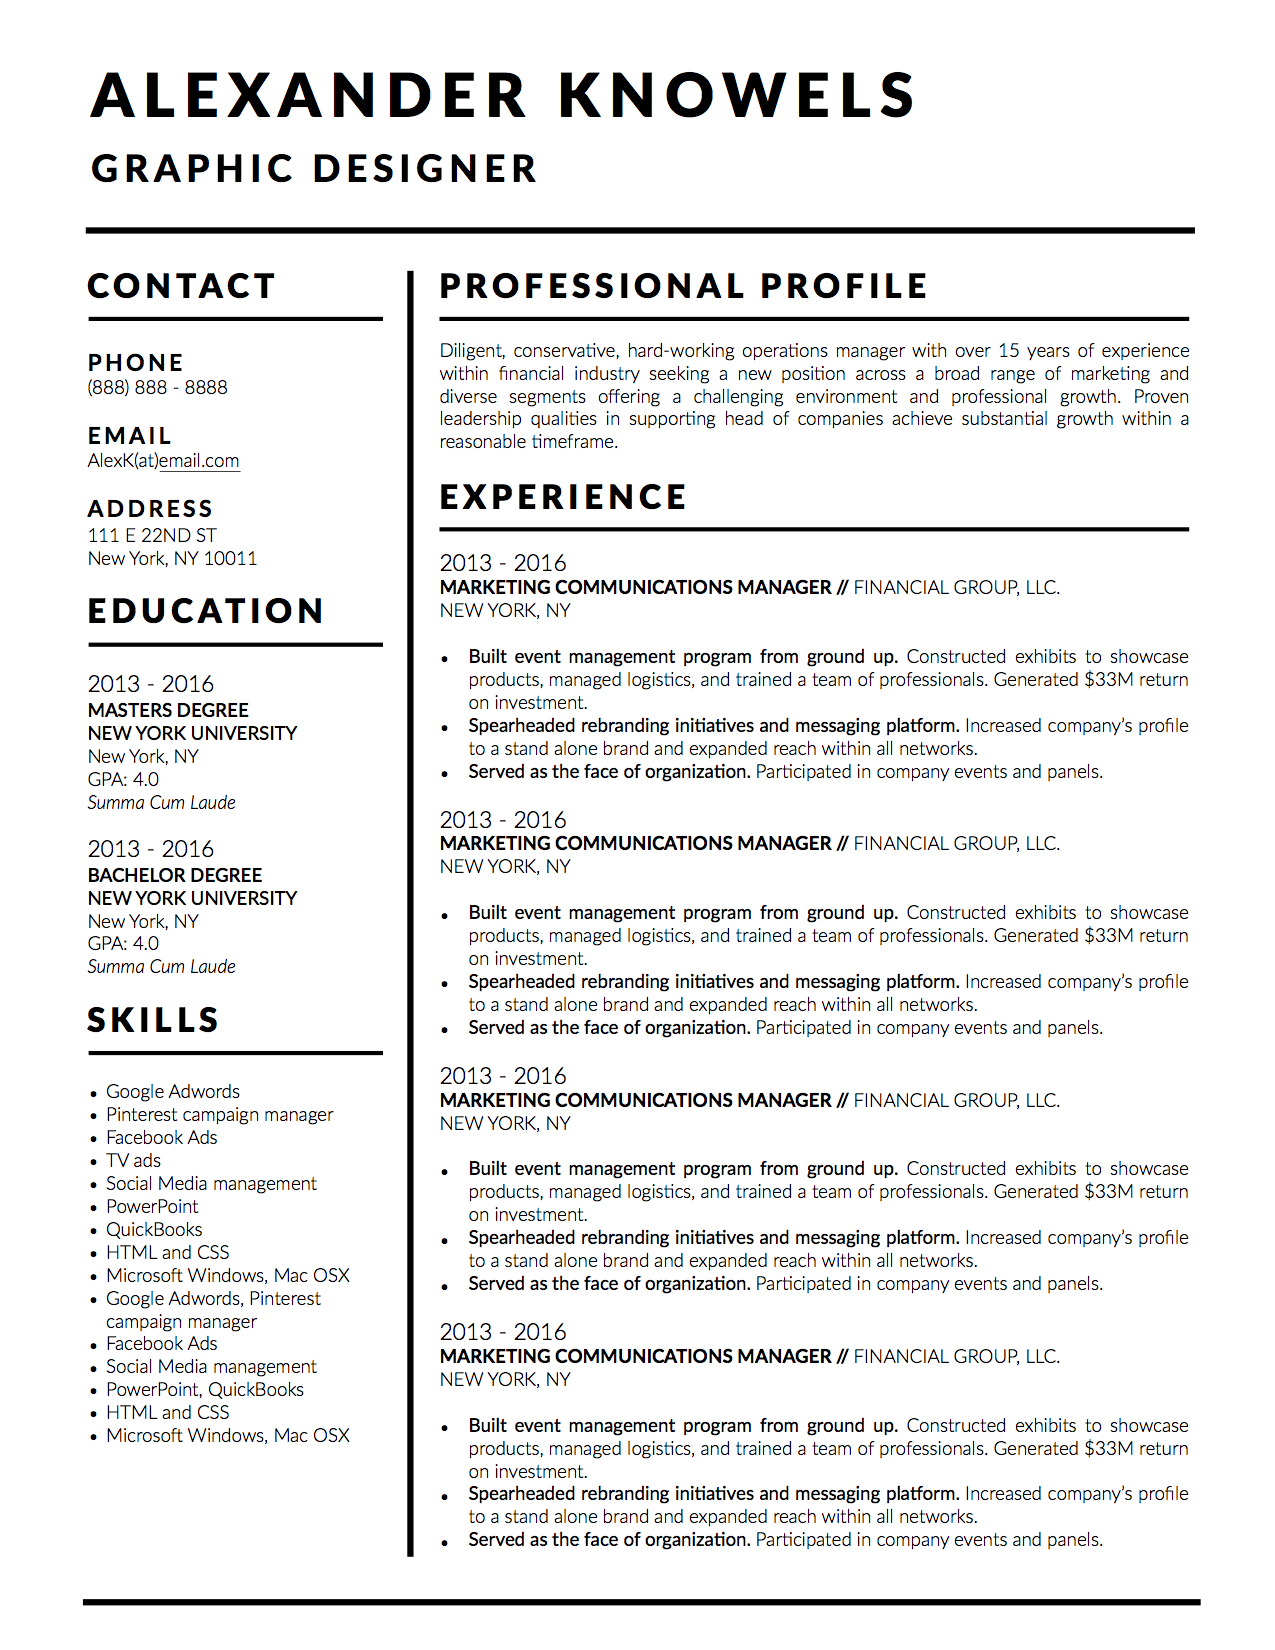 Alexander Knowels Downloadable Resume + Cover Template and Cover Letter Template for Microsoft Word and Apple Pages. This cover letter template is perfect for anyone in the fashion field. The template's design is a modern, unique, colorful, and professional. WE SWEAT THE DETAILS, SO YOU DON'T HAVE TO Stand Out Shop resume templates for Microsoft Word and Apple Pages will help you design a modern and professional resume in minutes! Simply download, open in Microsoft Word or Apple Pages, and input your resume's information. Increase your chances of landing your dream job with a job winning, modern, simple, and scannable resume template for Microsoft Word and Apple Pages. Creating a resume shouldn't suck Simply download a resume template from Stand Out Shop, enter your information in Microsoft Word or Apple Pages and get a beautifully formatted resume in seconds. Create a unique and vivid resume in minutes. Make an impressive resume. Customize your own layout in Microsoft Word or Apple Pages and introduce yourself in an impressive way. You can download your resume at any time. Stand out from other job seekers with a beautiful professional design.